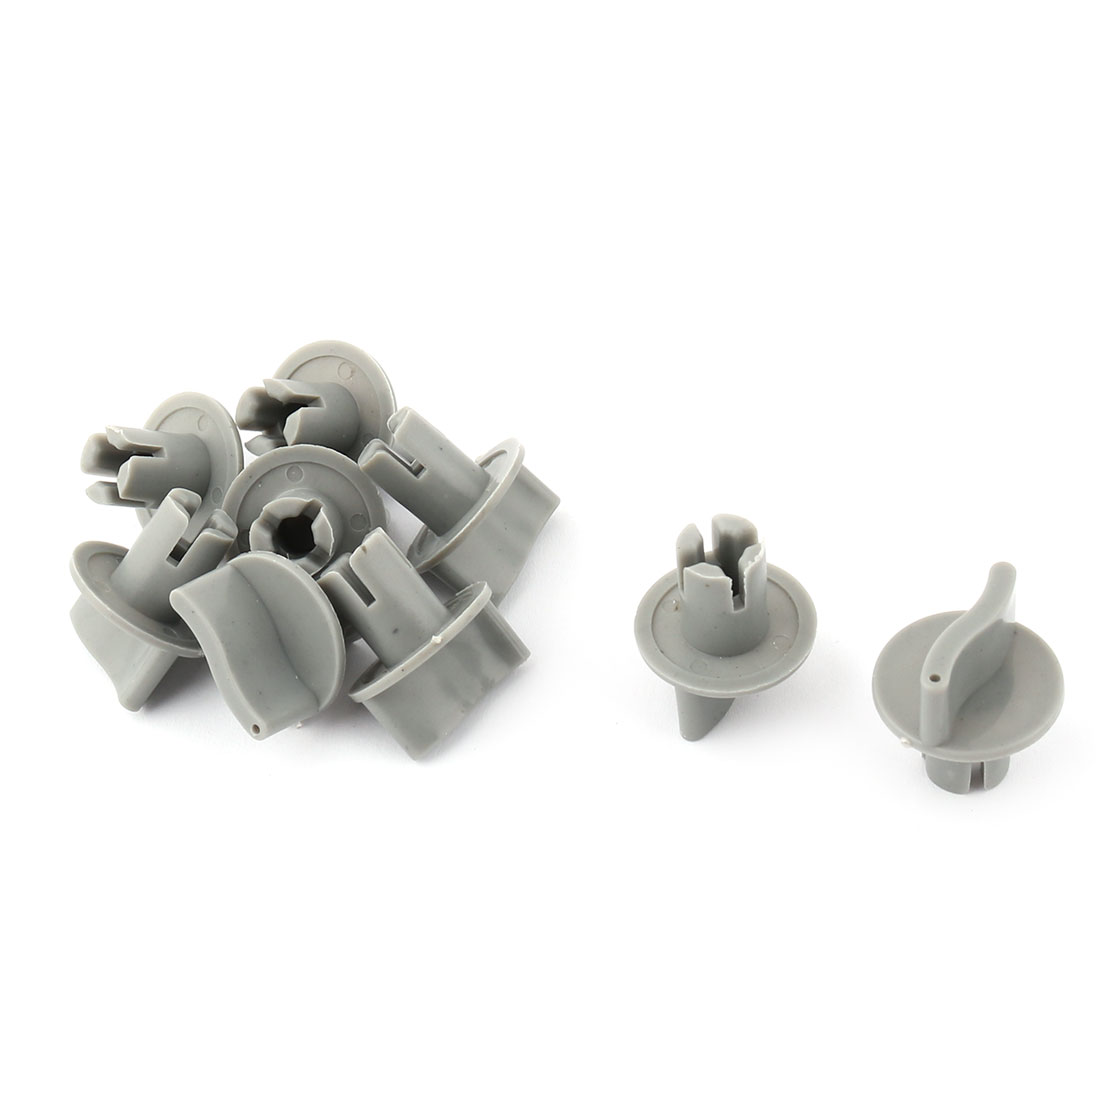 Home Plastic Grip Switch Turning Head Gas Furnace Potentiometer Volume Control Knob Gray 9pcs